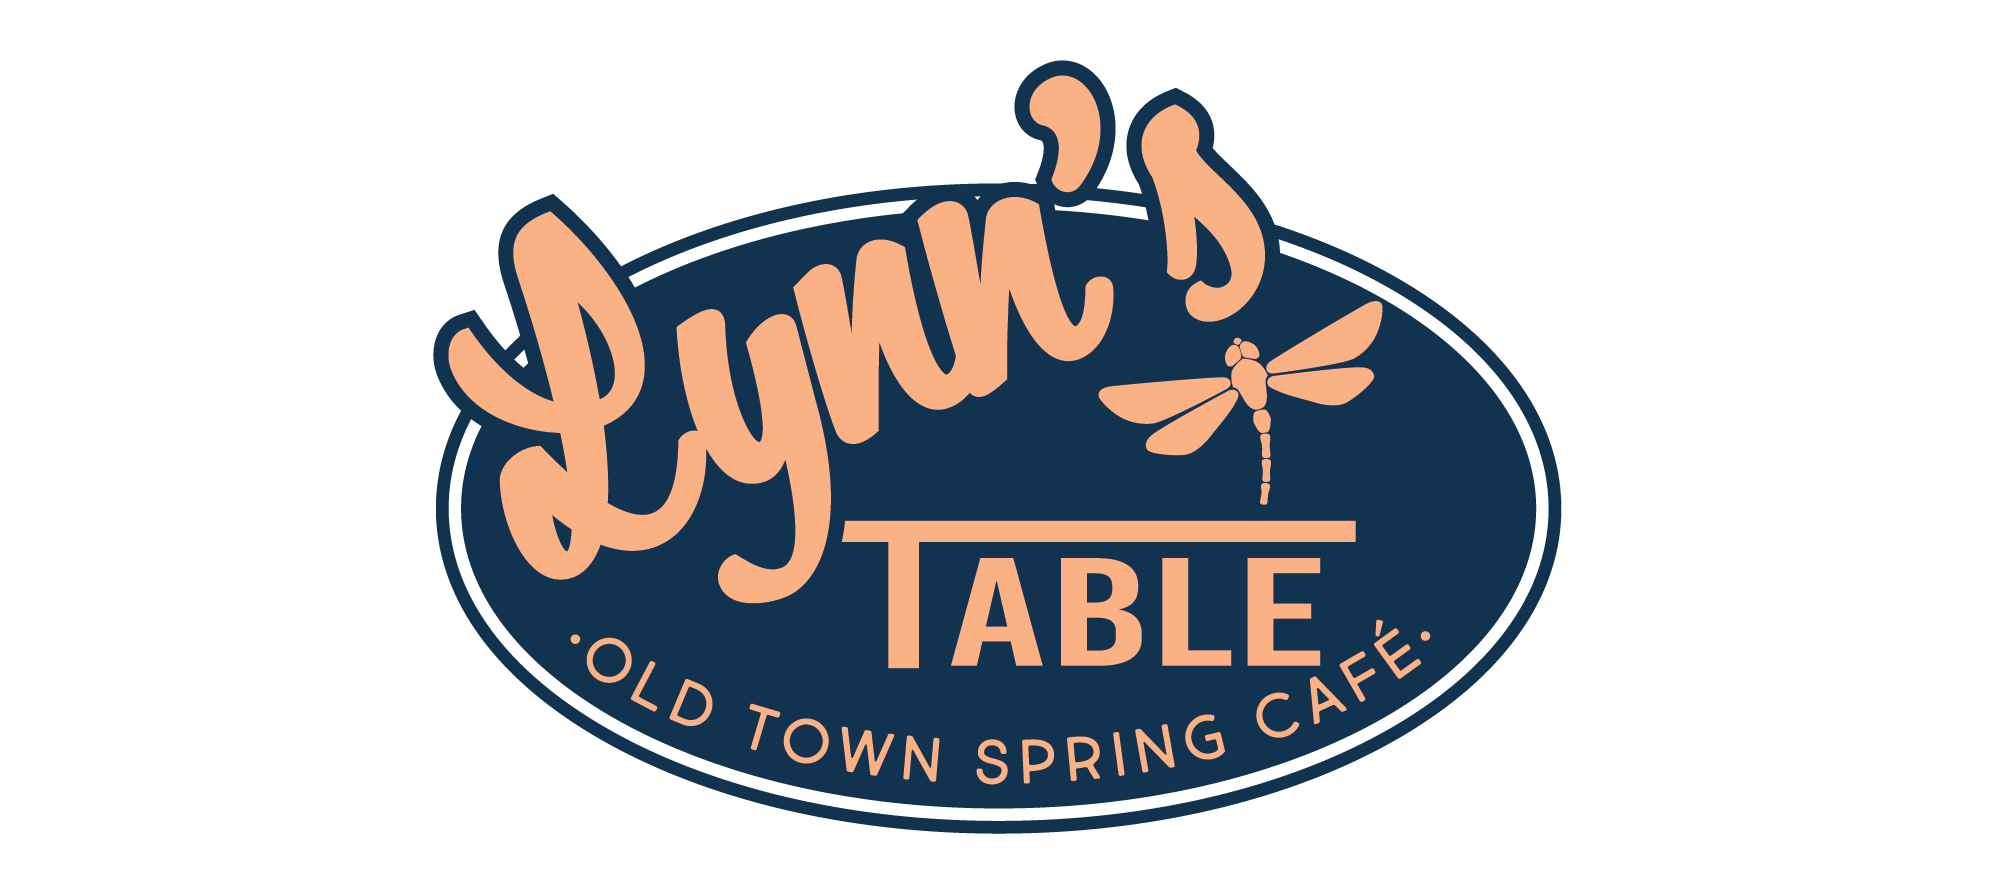 Lynn's Table - Old Town Spring Cafe